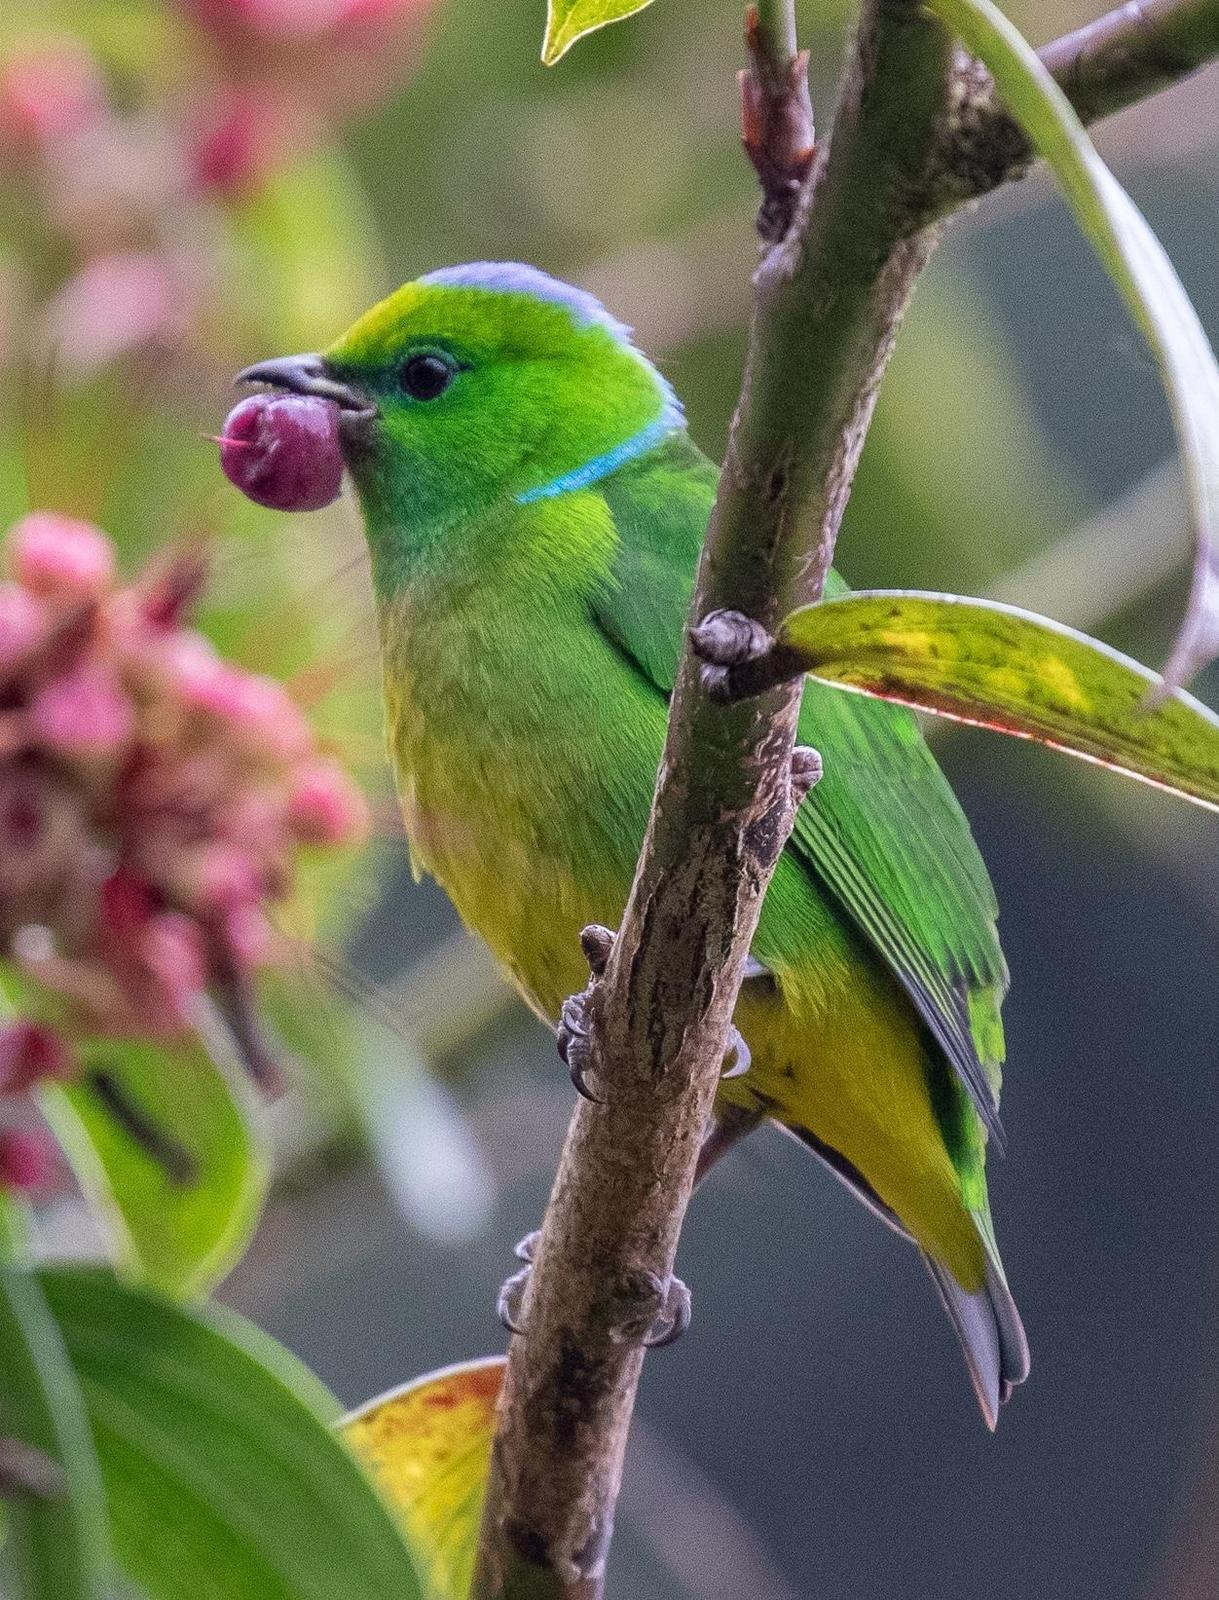 Golden-browed Chlorophonia Photo by Kate Persons